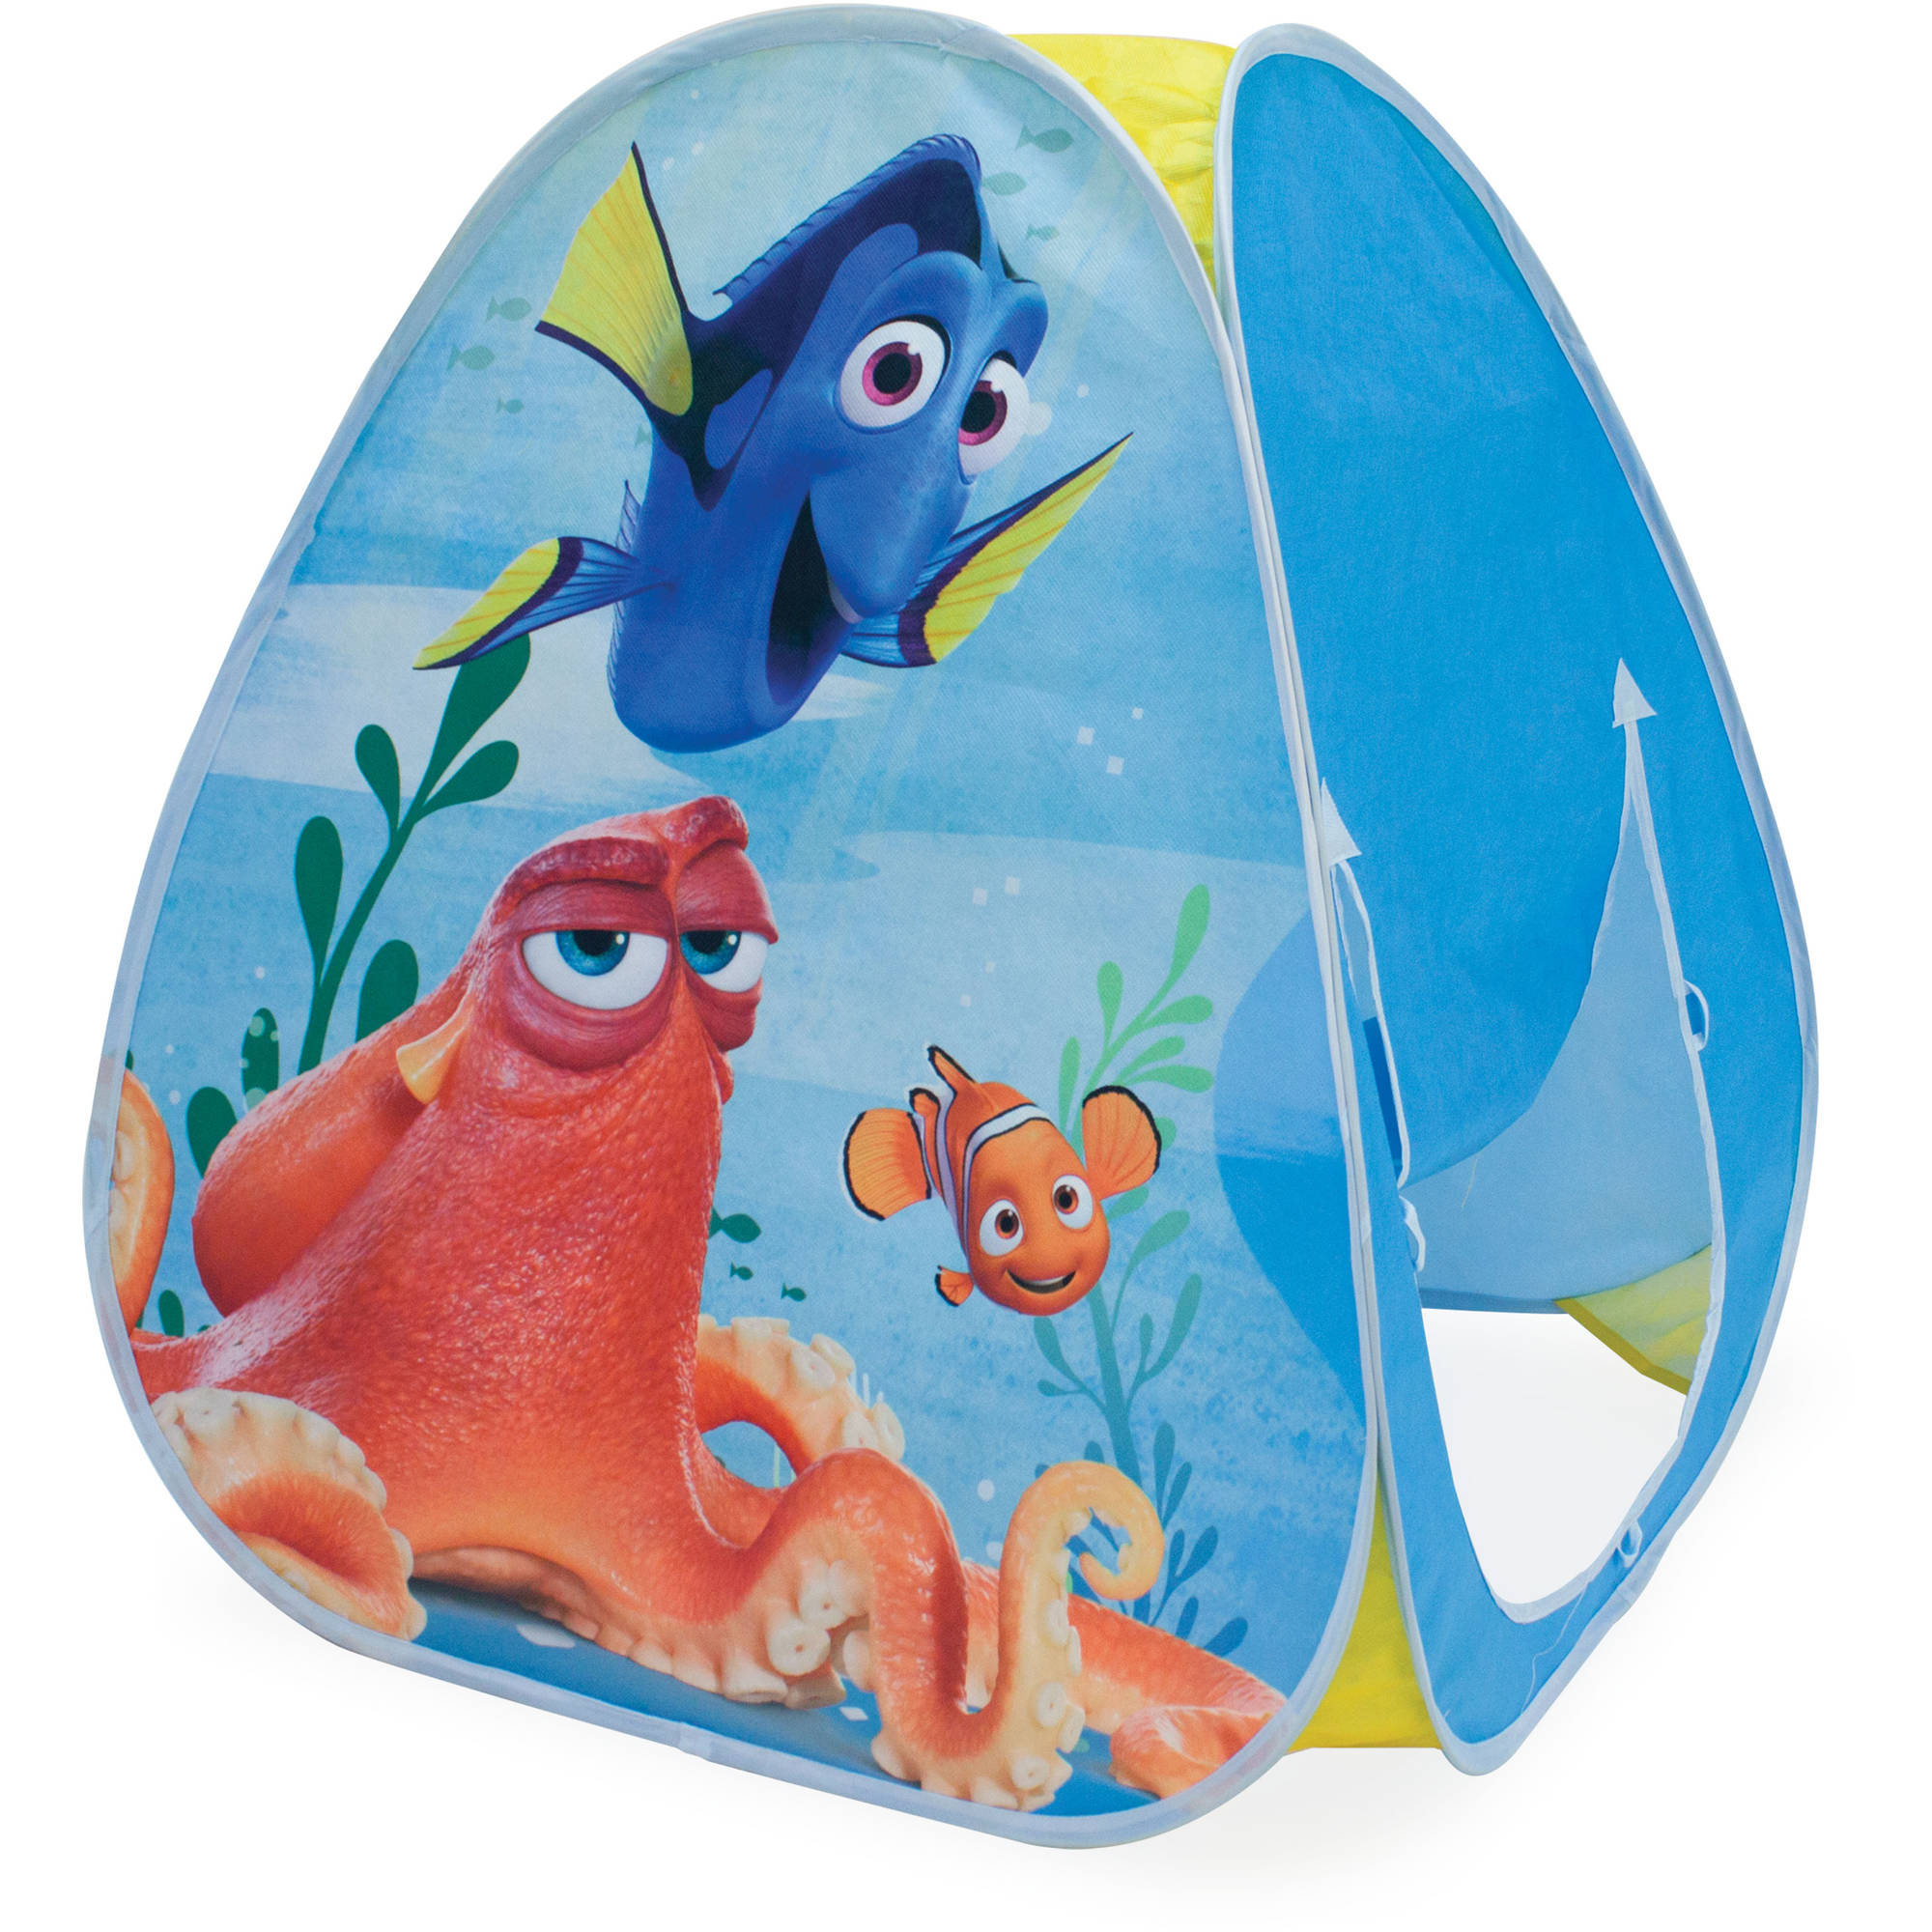 Finding Dory Classic Hideaway